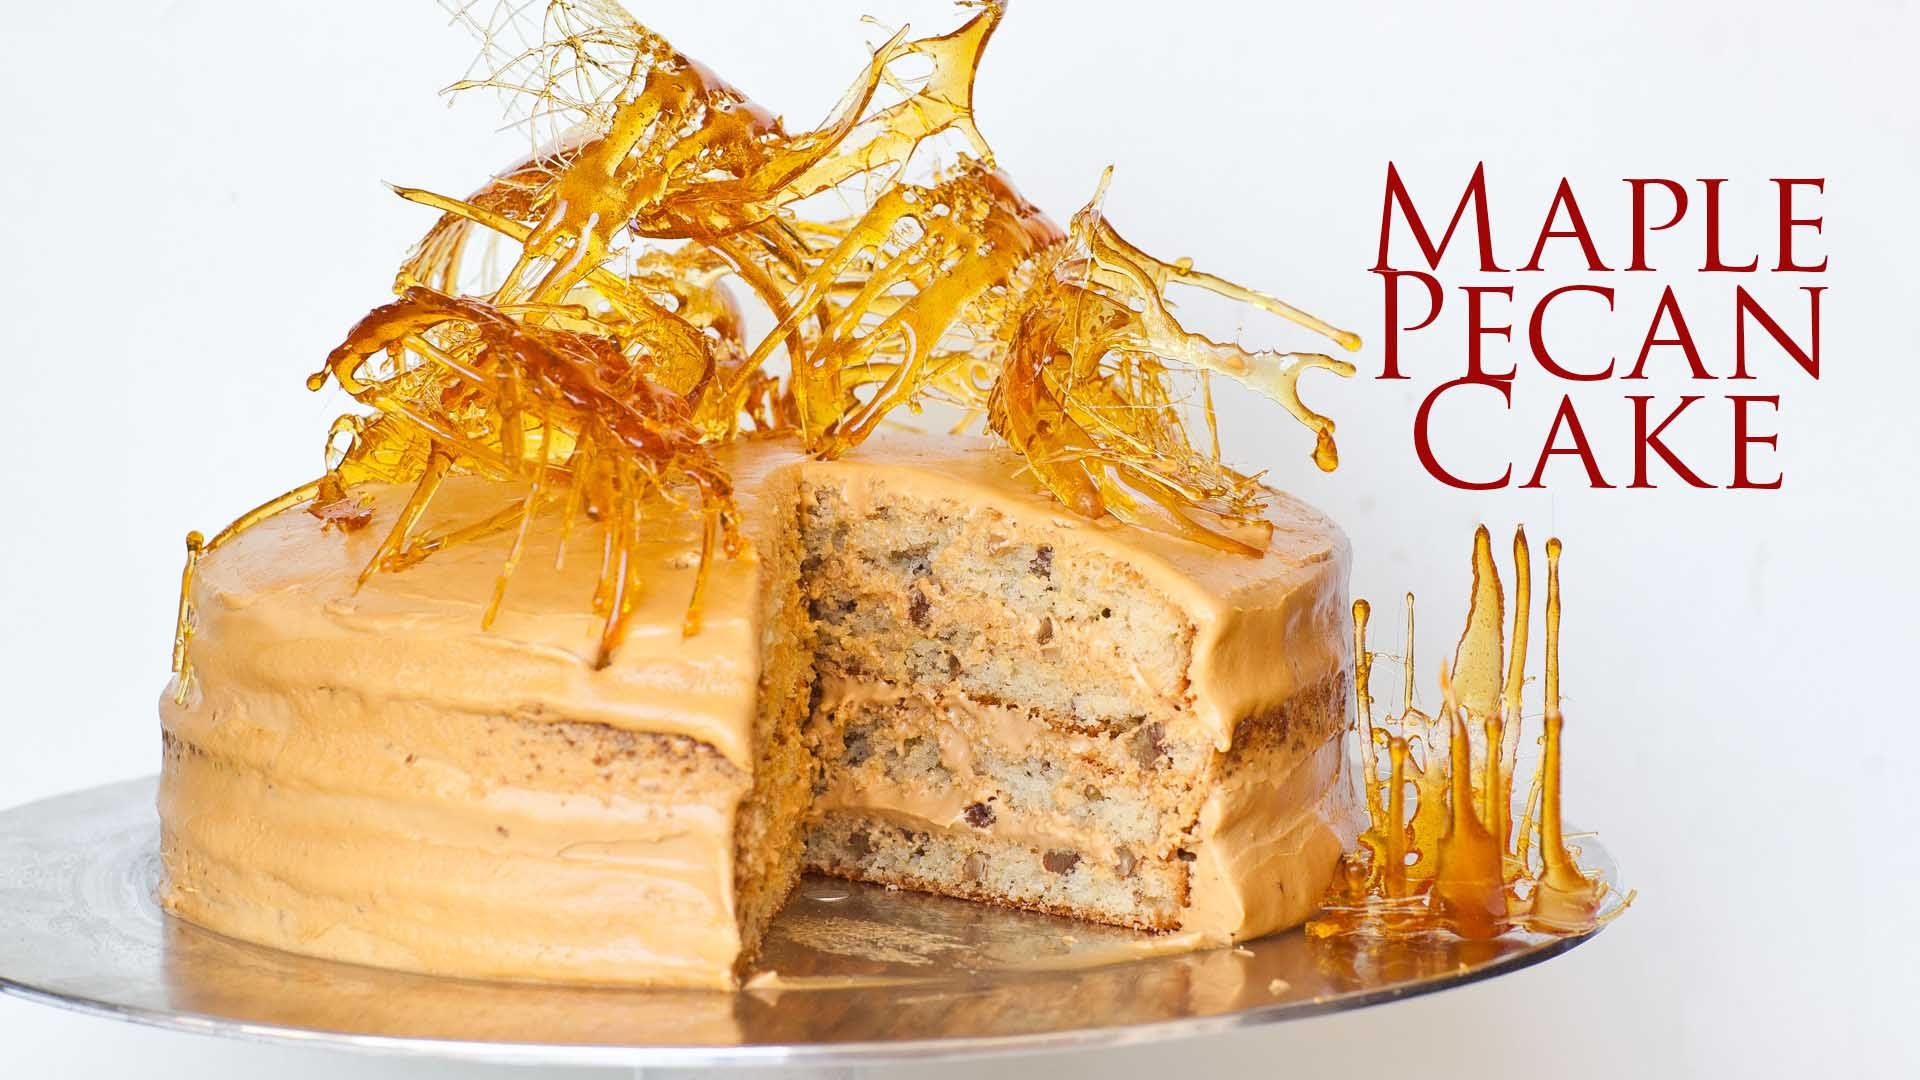 This Maple Pecan Cake With Salted Caramel Frosting Is Not Only Delicious But Super Elegant